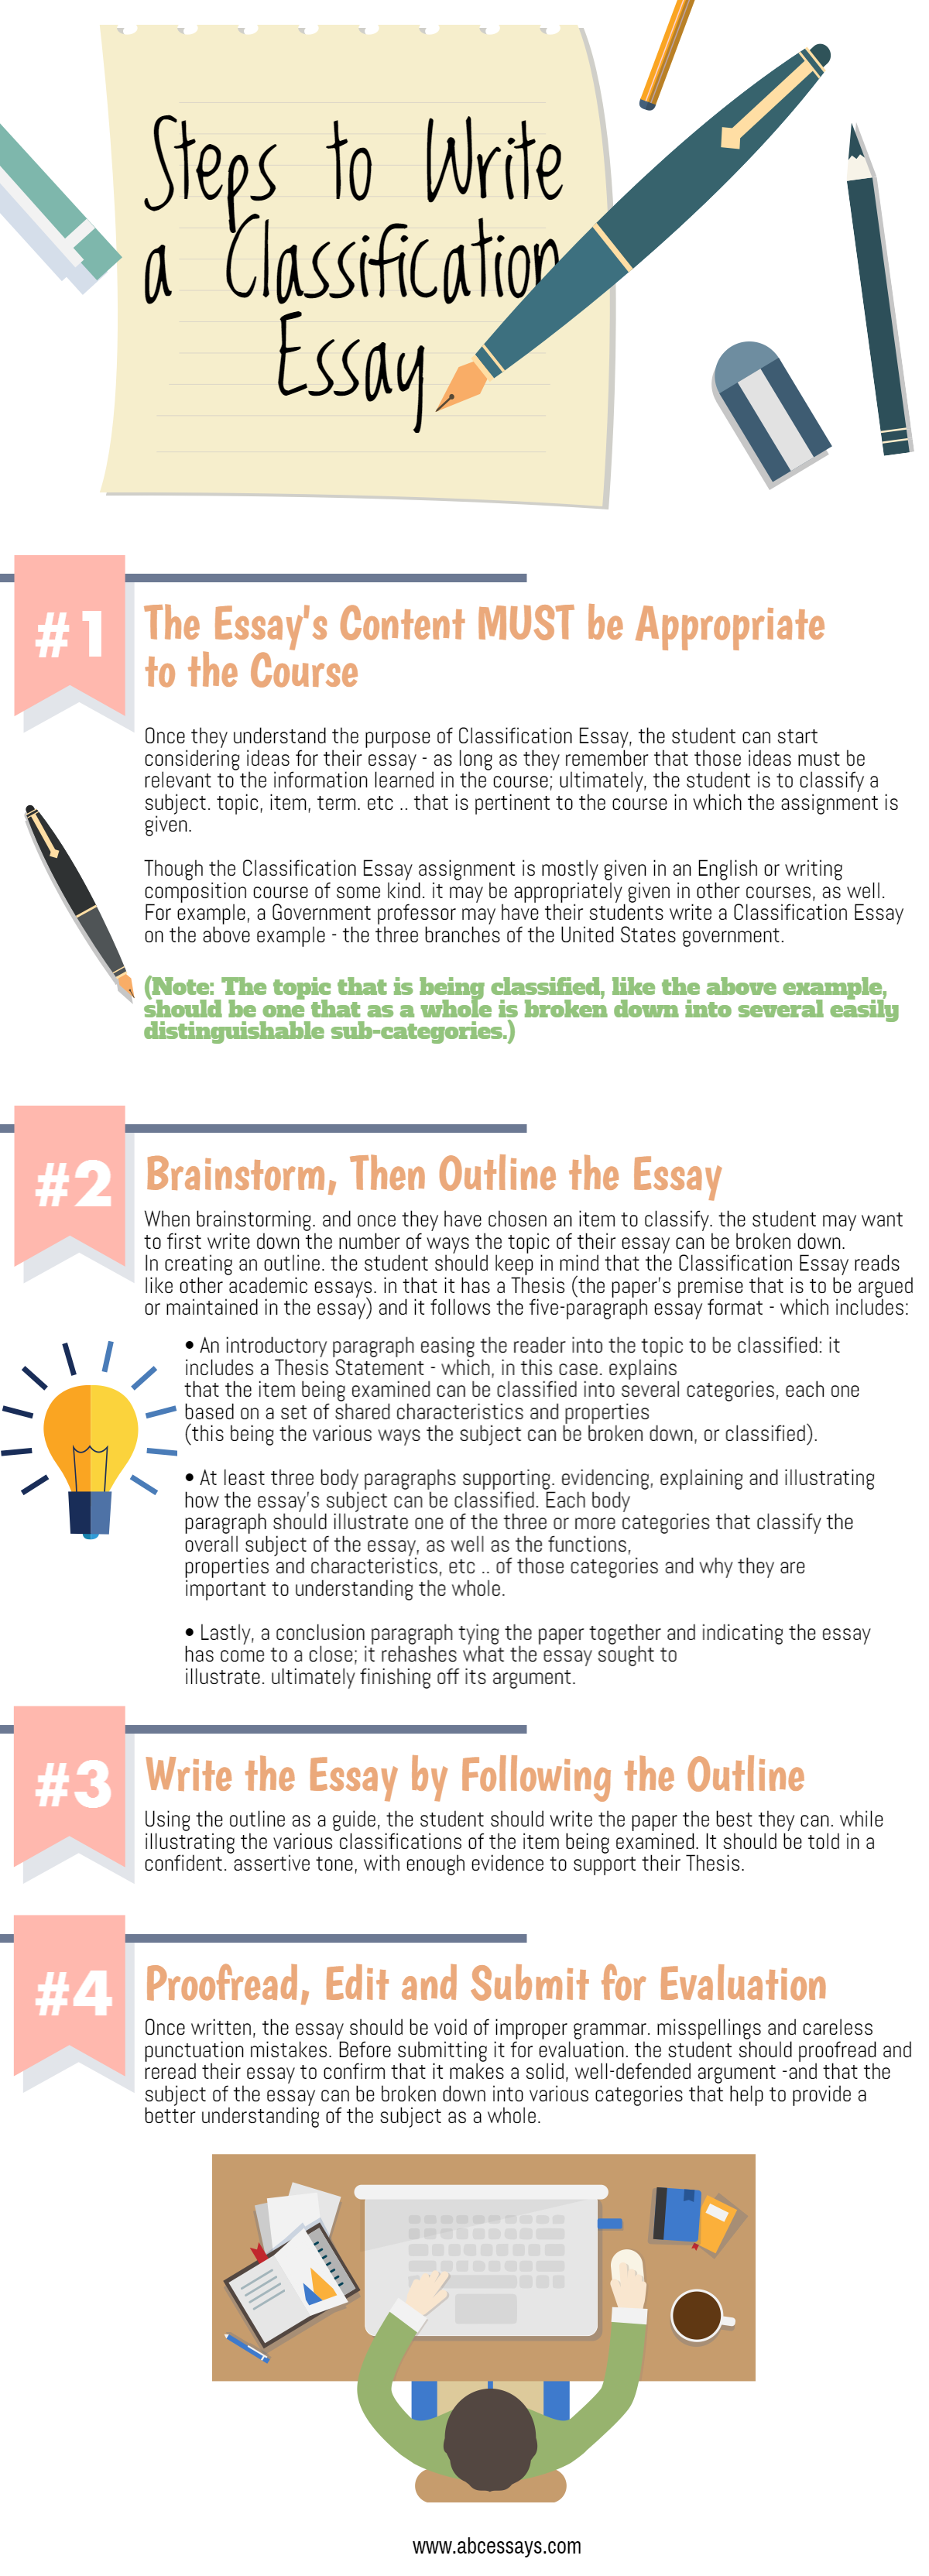 popular school essay ghostwriter website for college answering easy outline essay design synthesis sample poem analysis essay harlem poem by langston hughes students sample